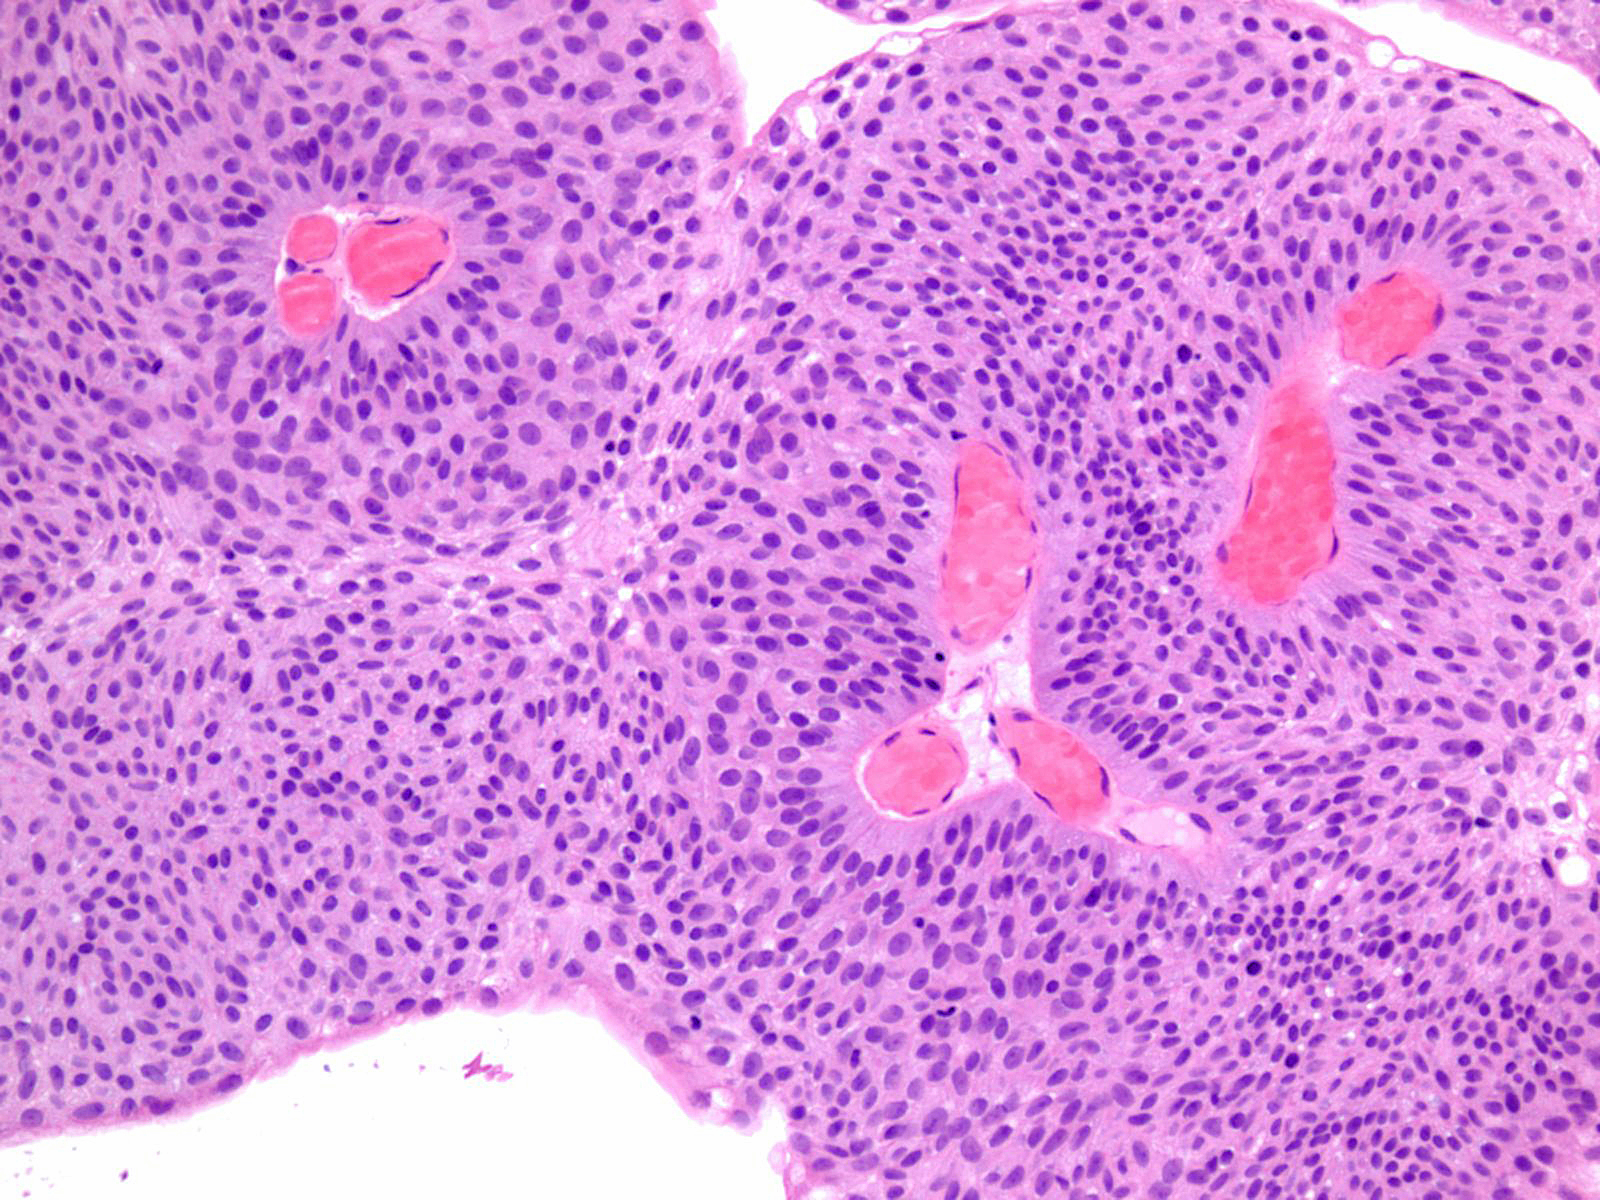 papillary urothelial carcinoma icd 9